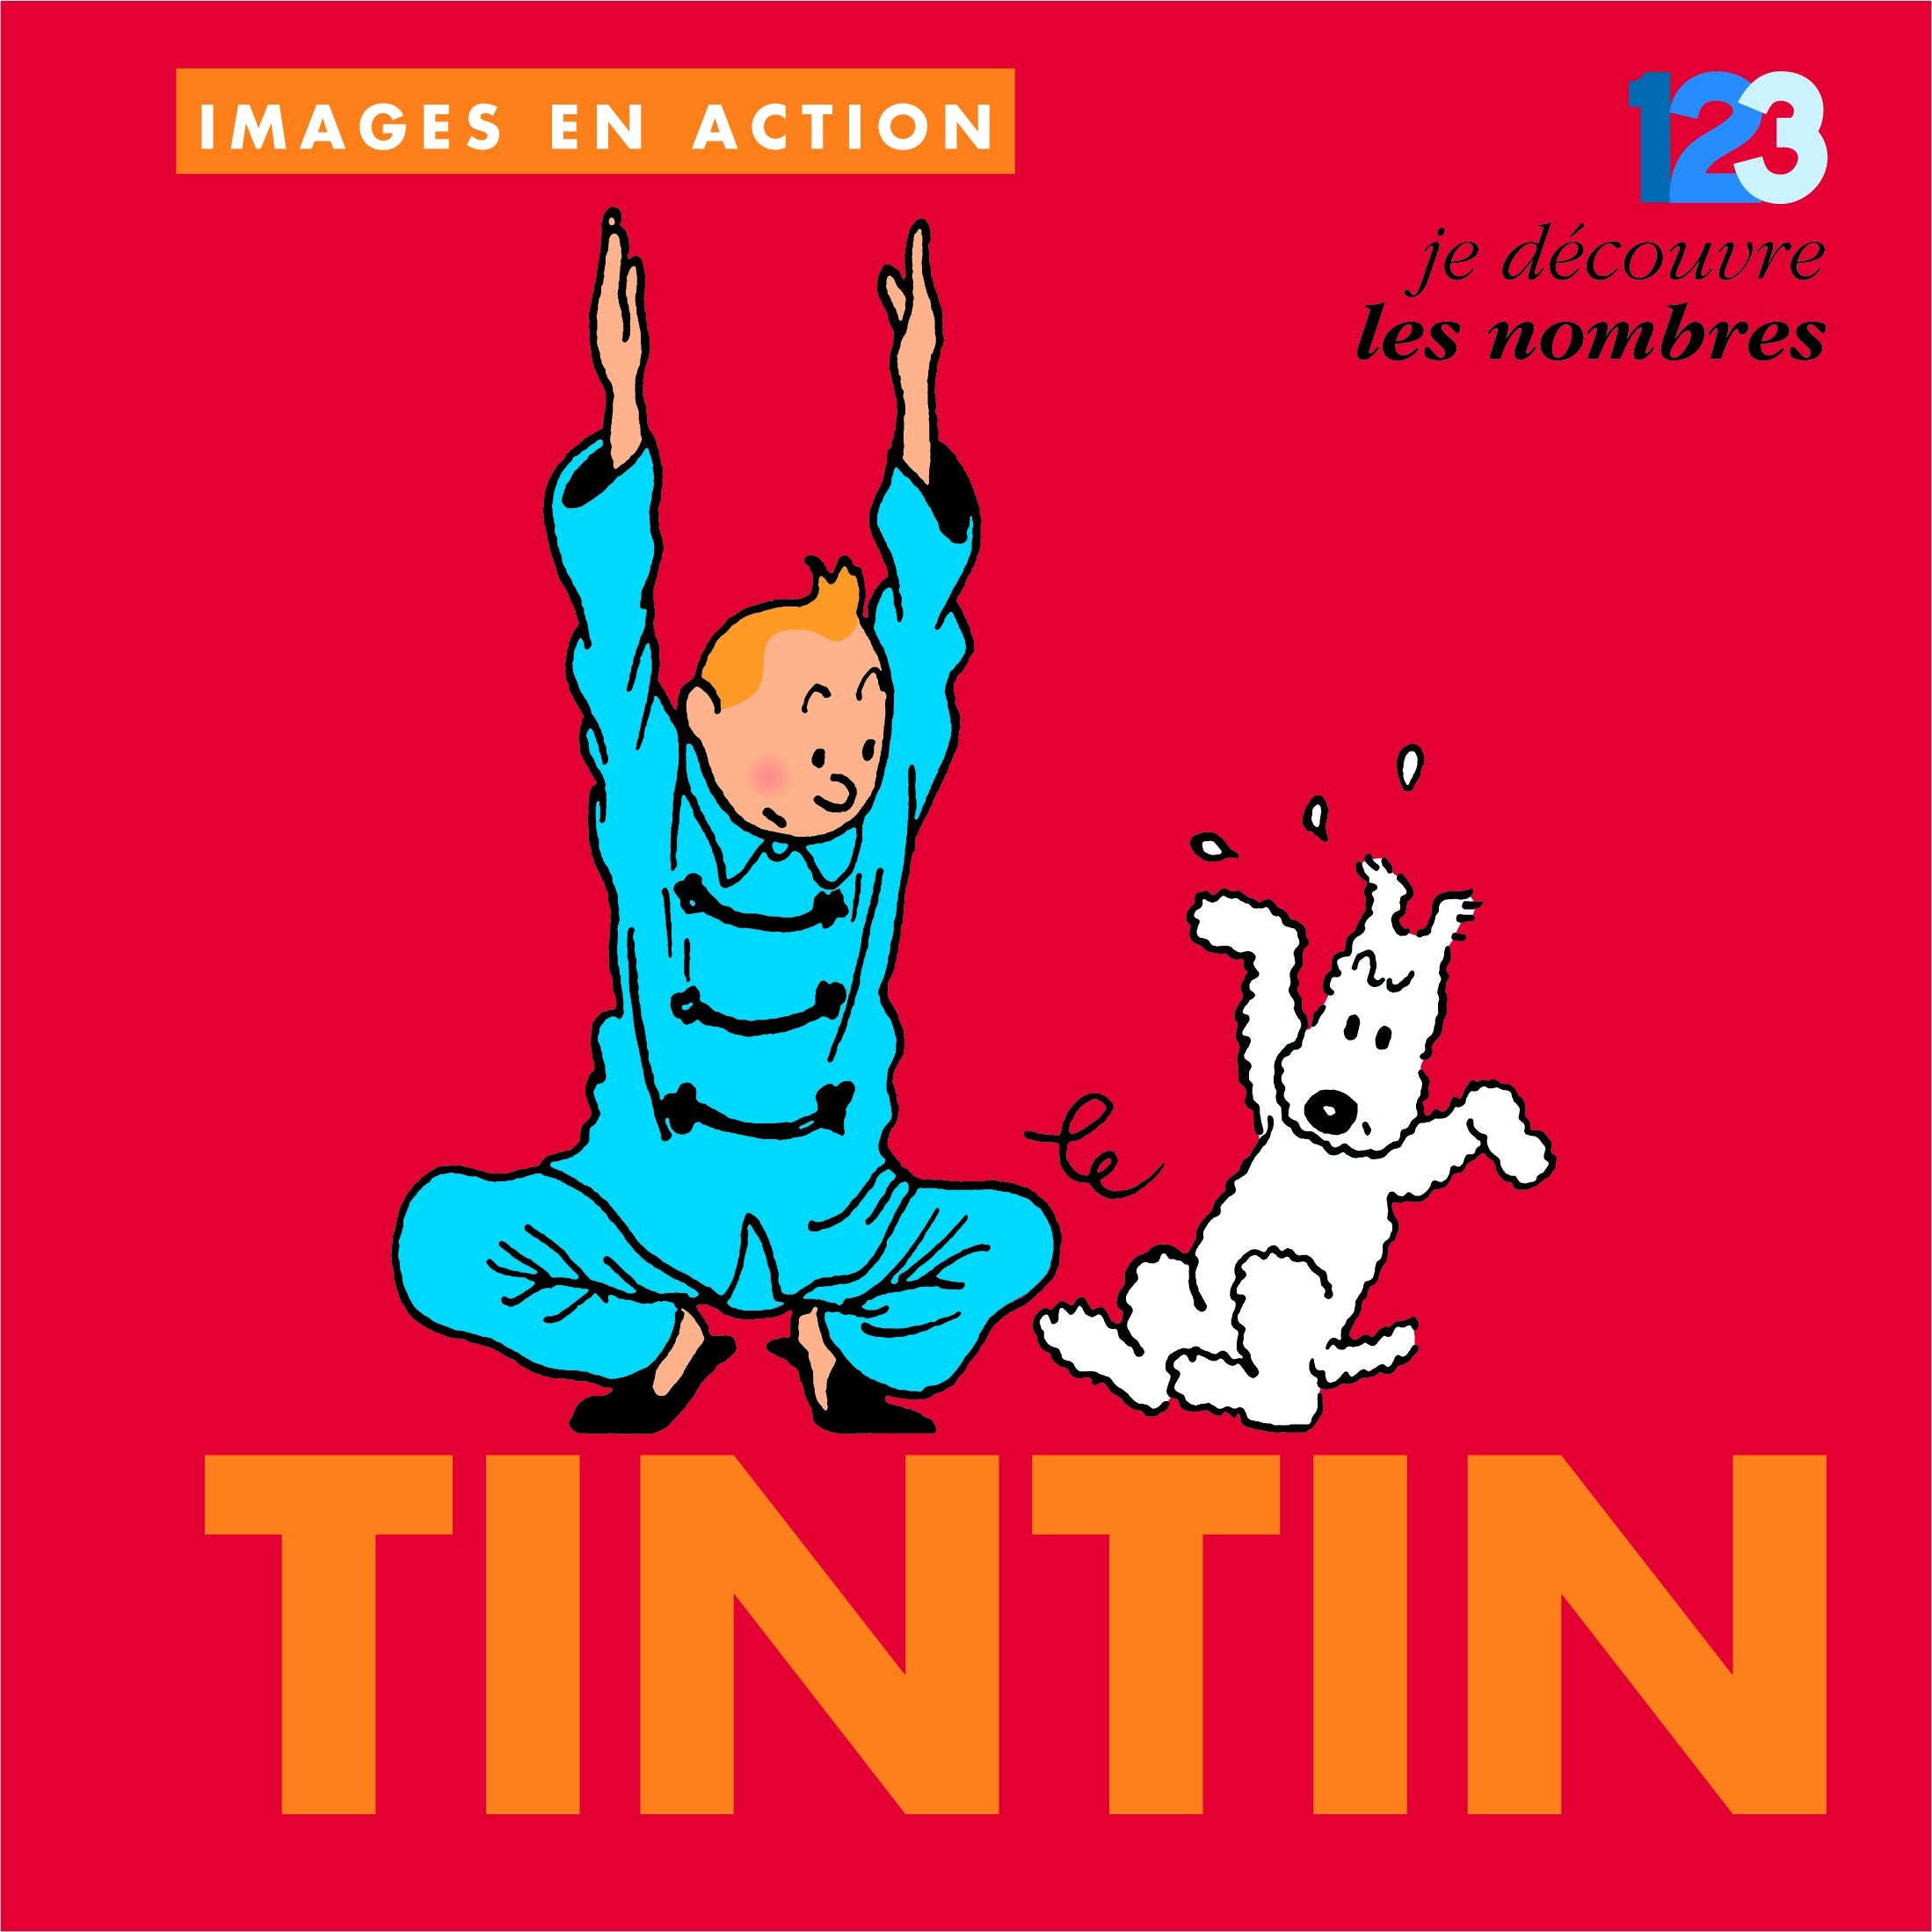 TINTIN BOOKS - IMAGES LES NOMBRES (FRENCH)